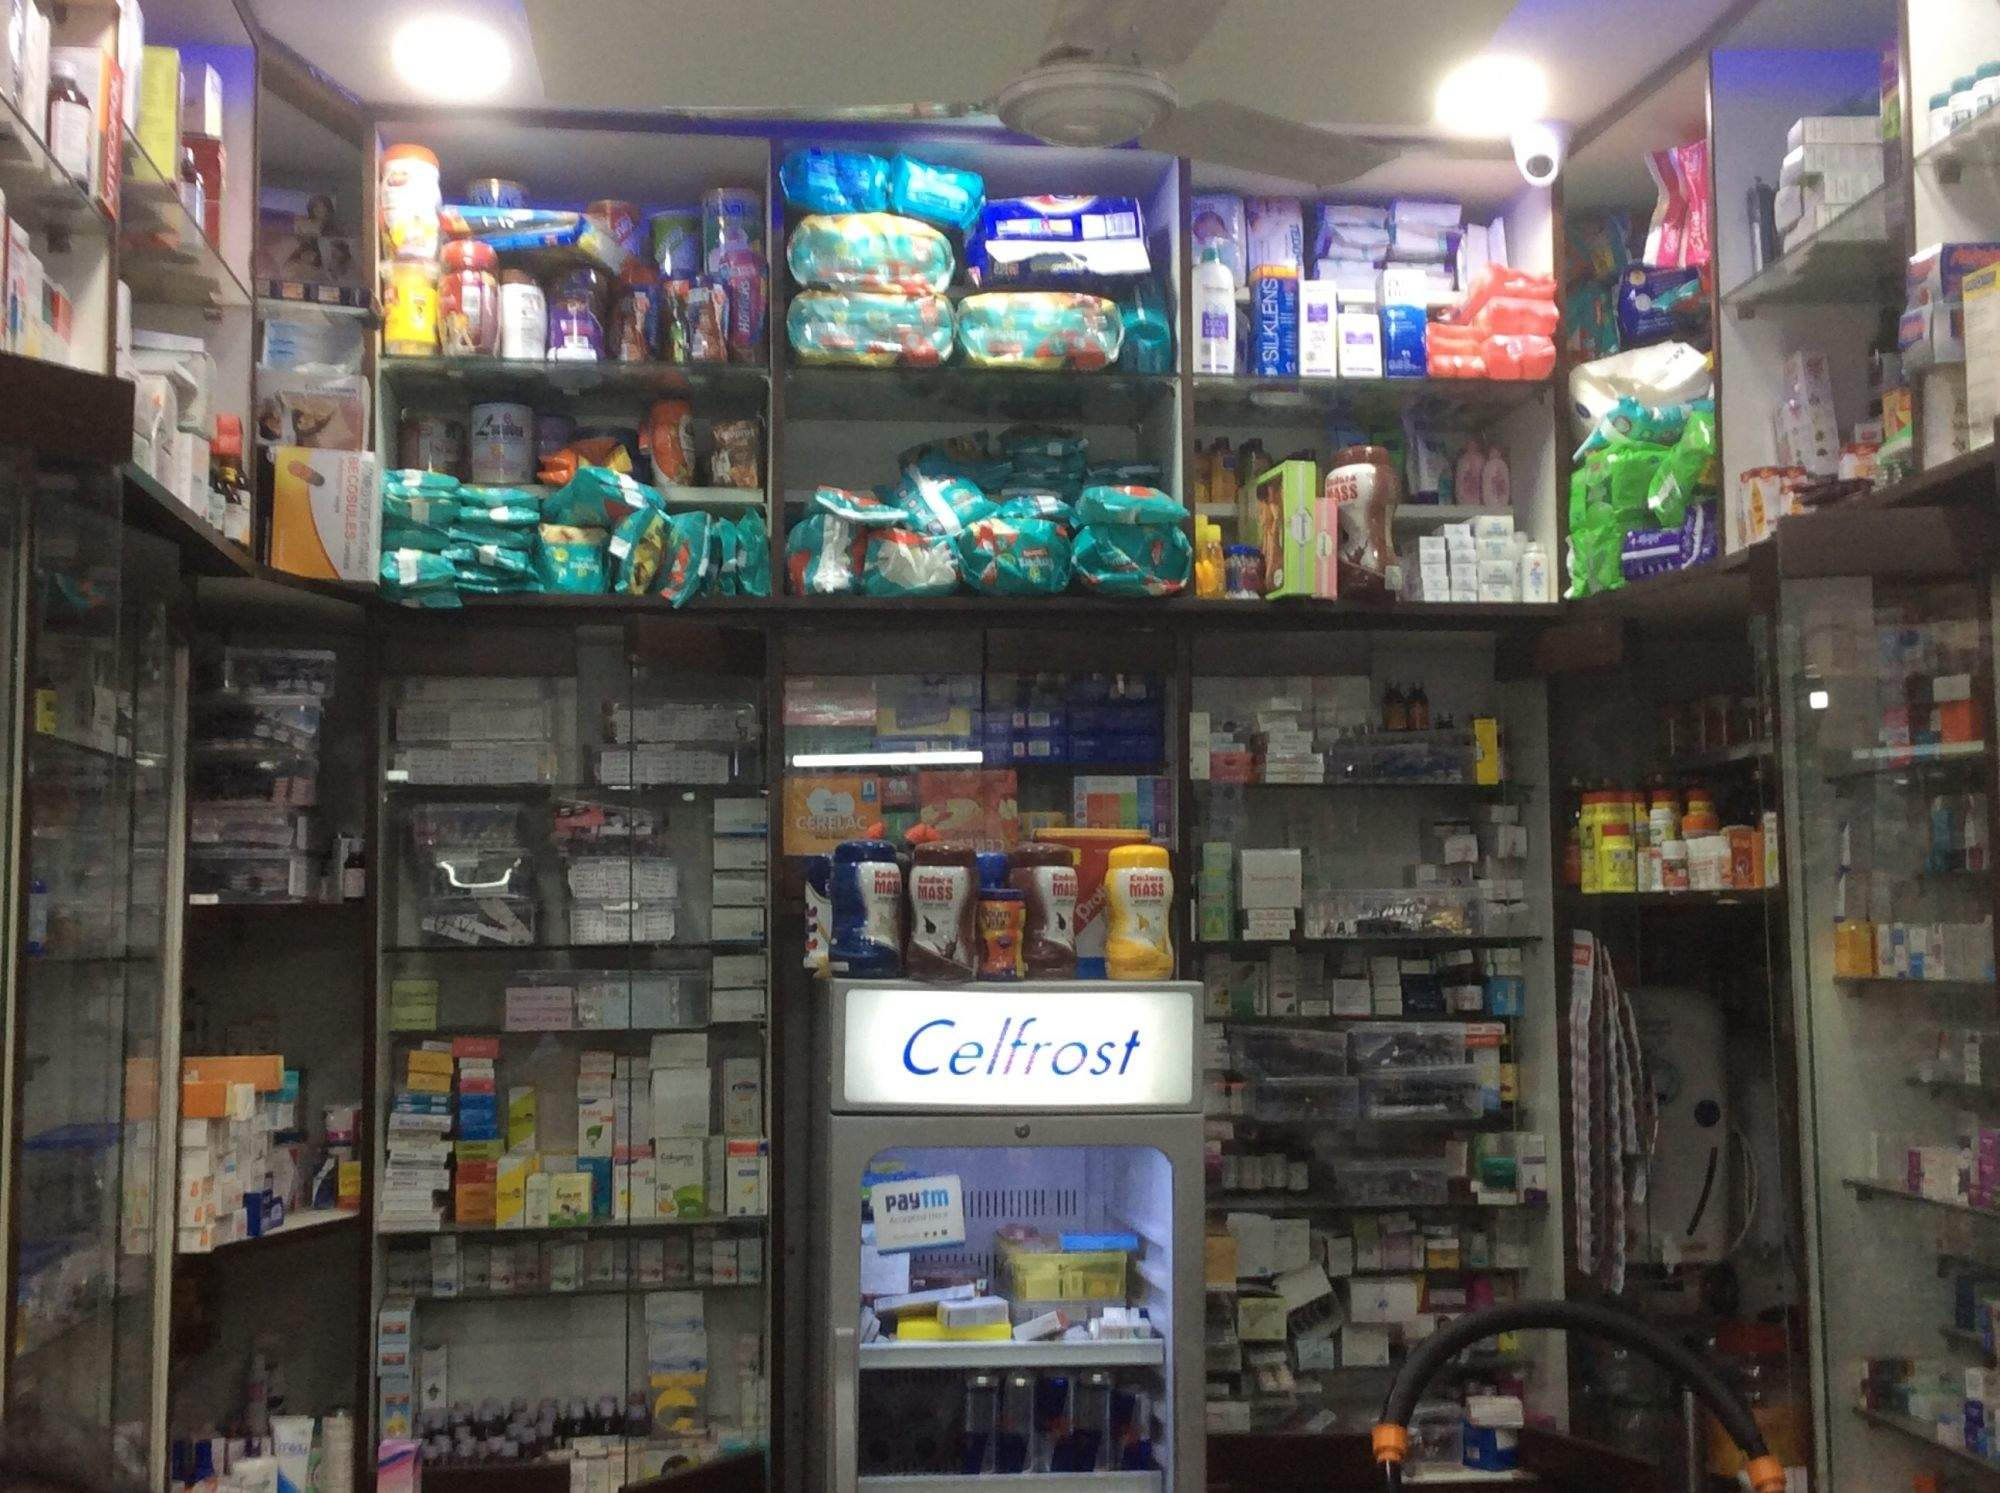 Chemist shops remain open : Chandigarh Administration